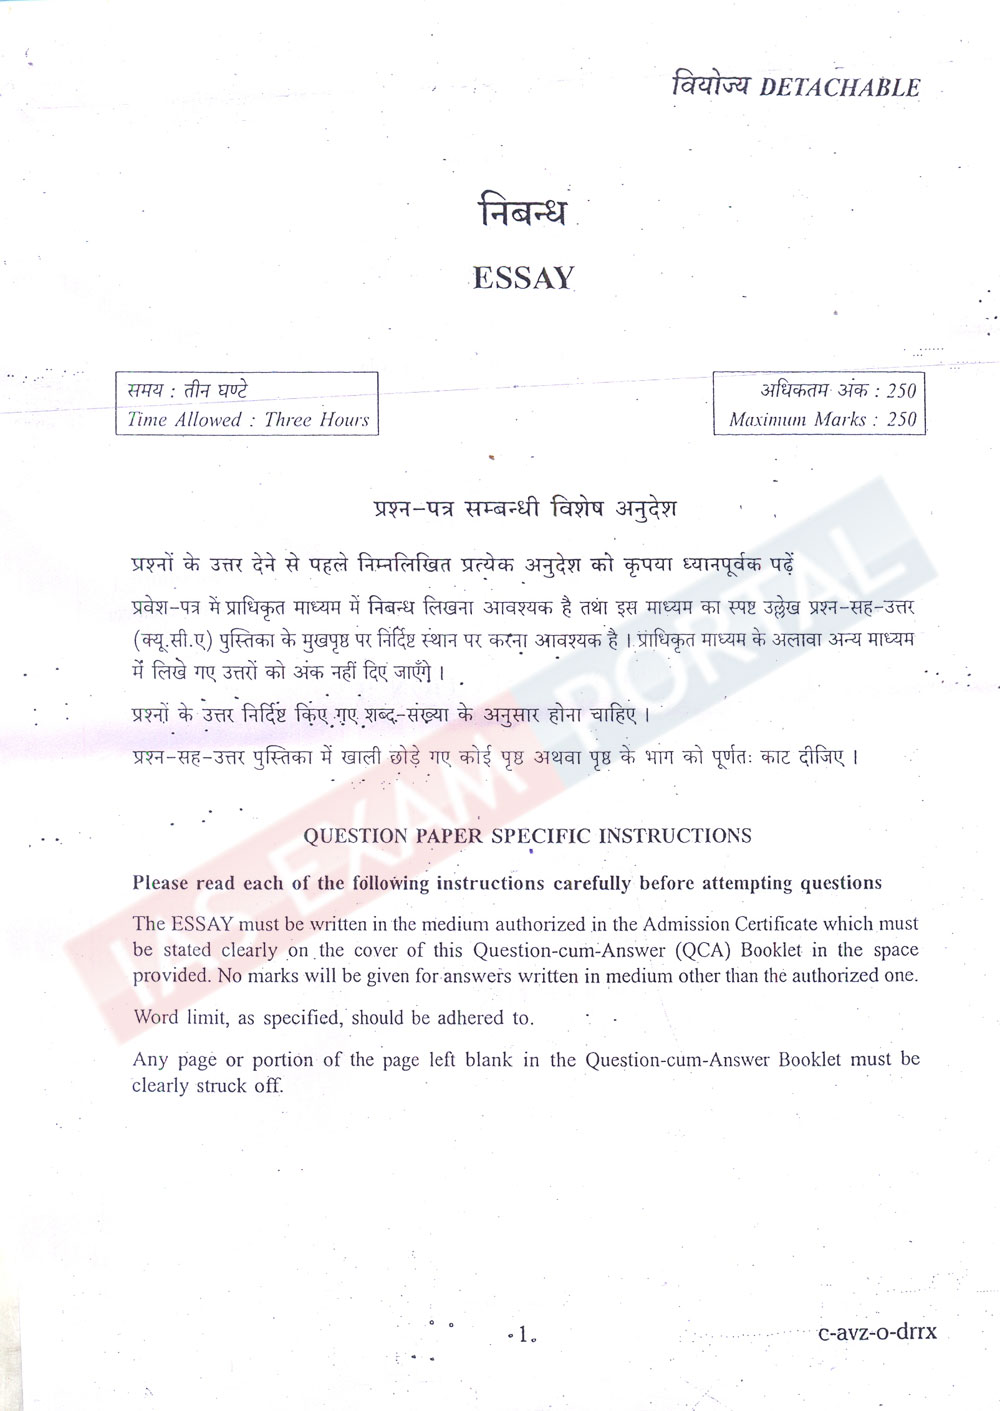 Essay On My Mother In English  Easy Persuasive Essay Topics For High School also Essay Health Download Upsc Ias Mains  Essay Compulsory Question  The Benefits Of Learning English Essay